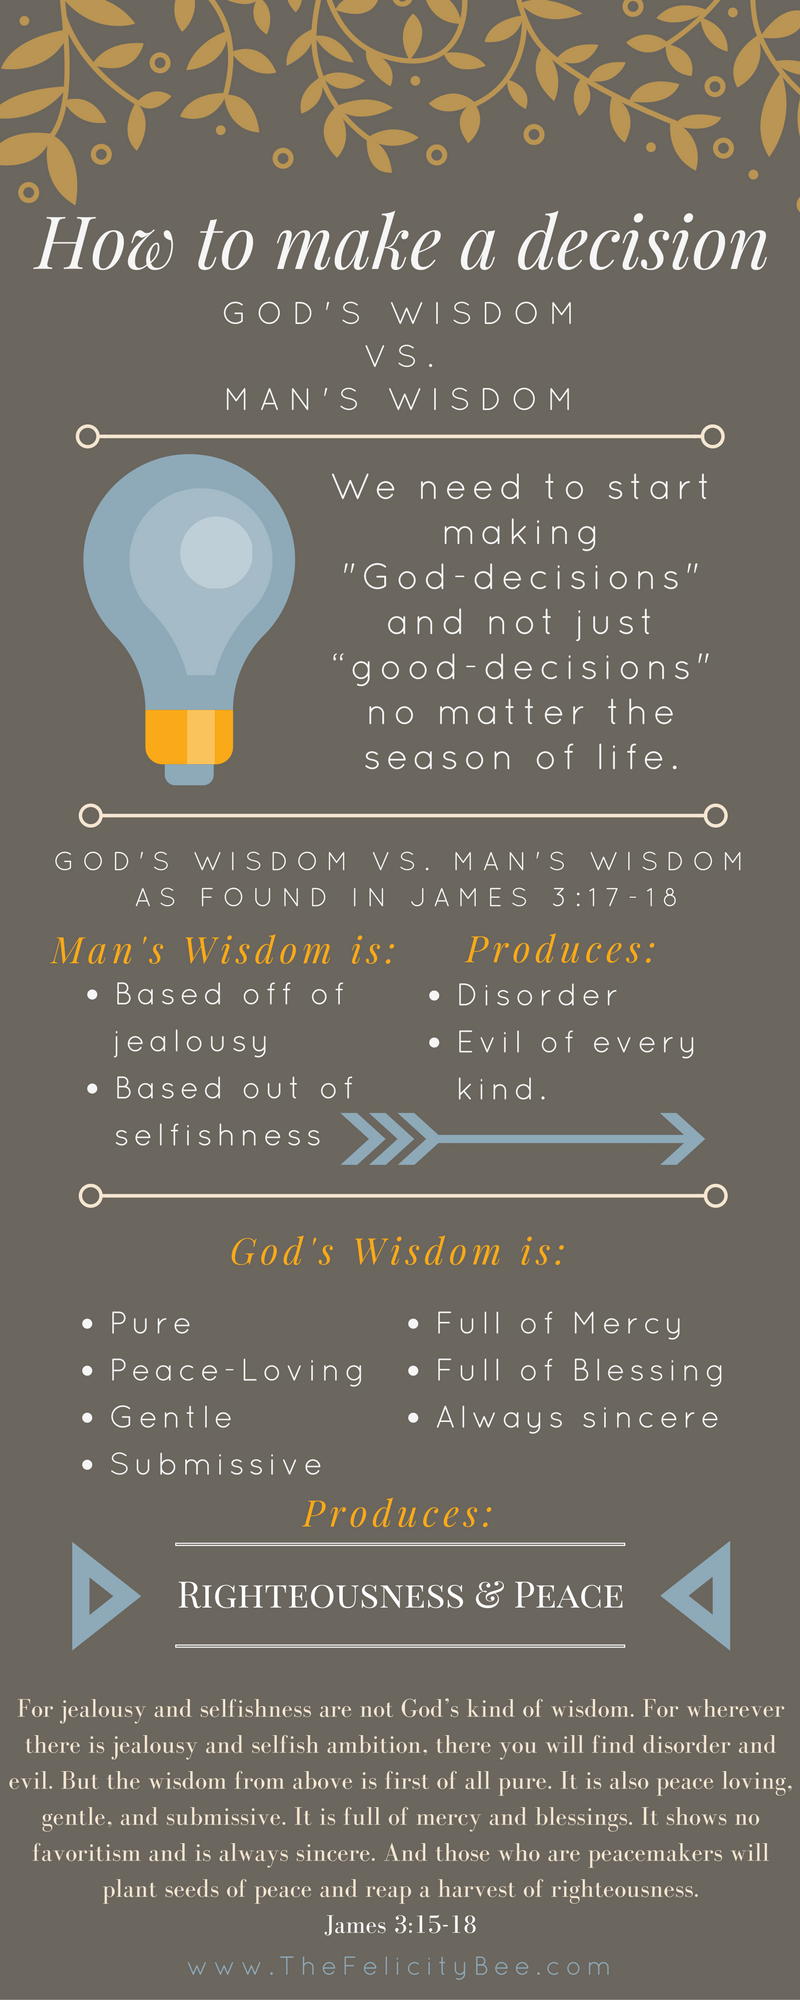 Godly wisdom vs. Man's wisdom